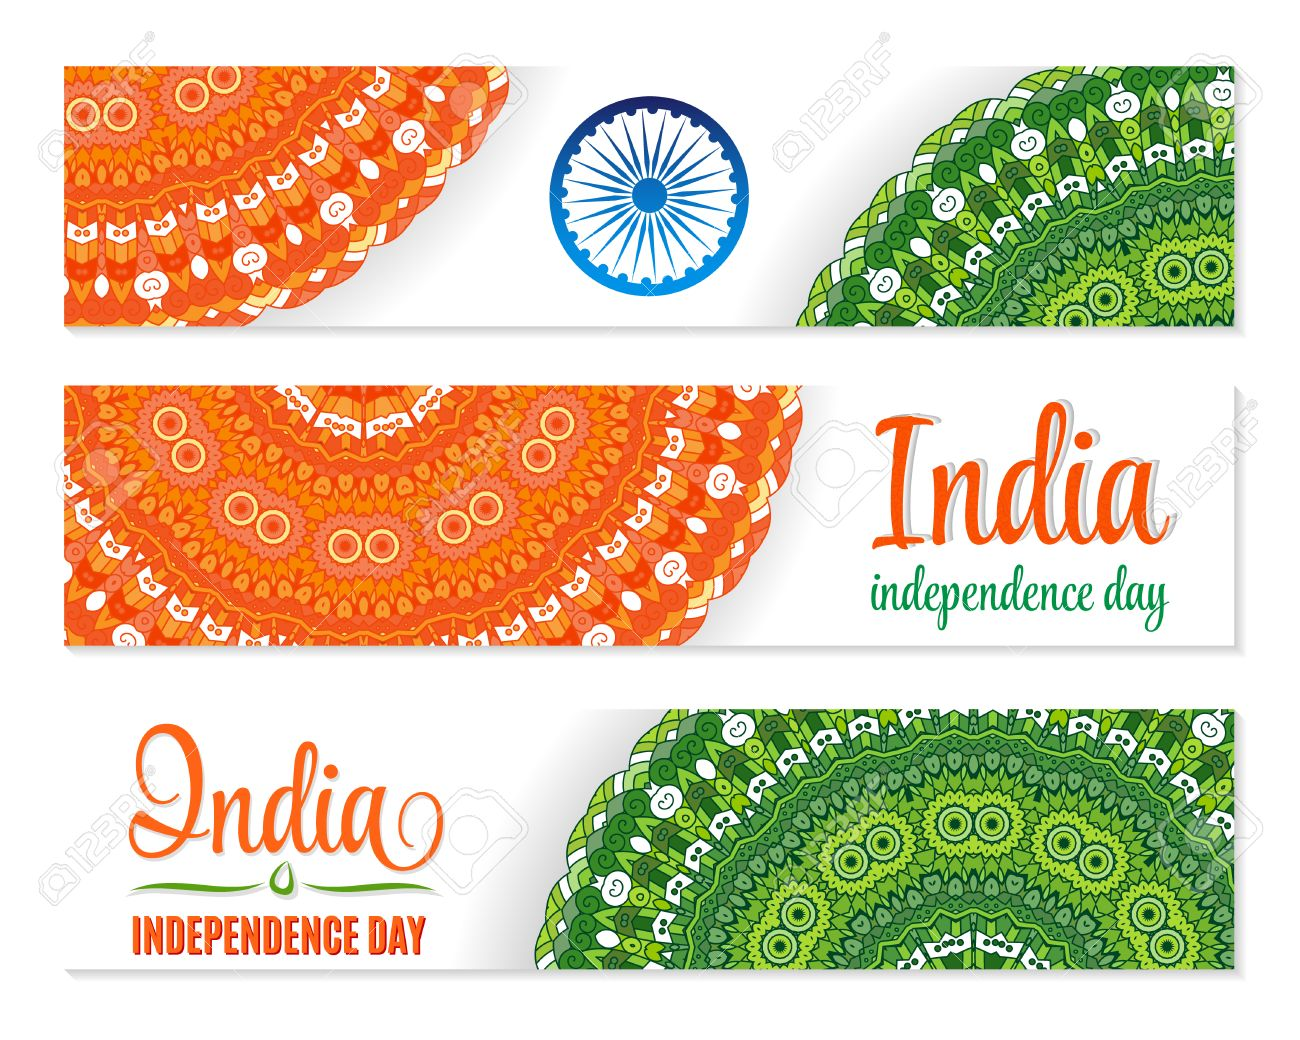 Colors website ashoka - Independence Day India Banner Set Traditional Mandala Ornament Indian Flag Colors